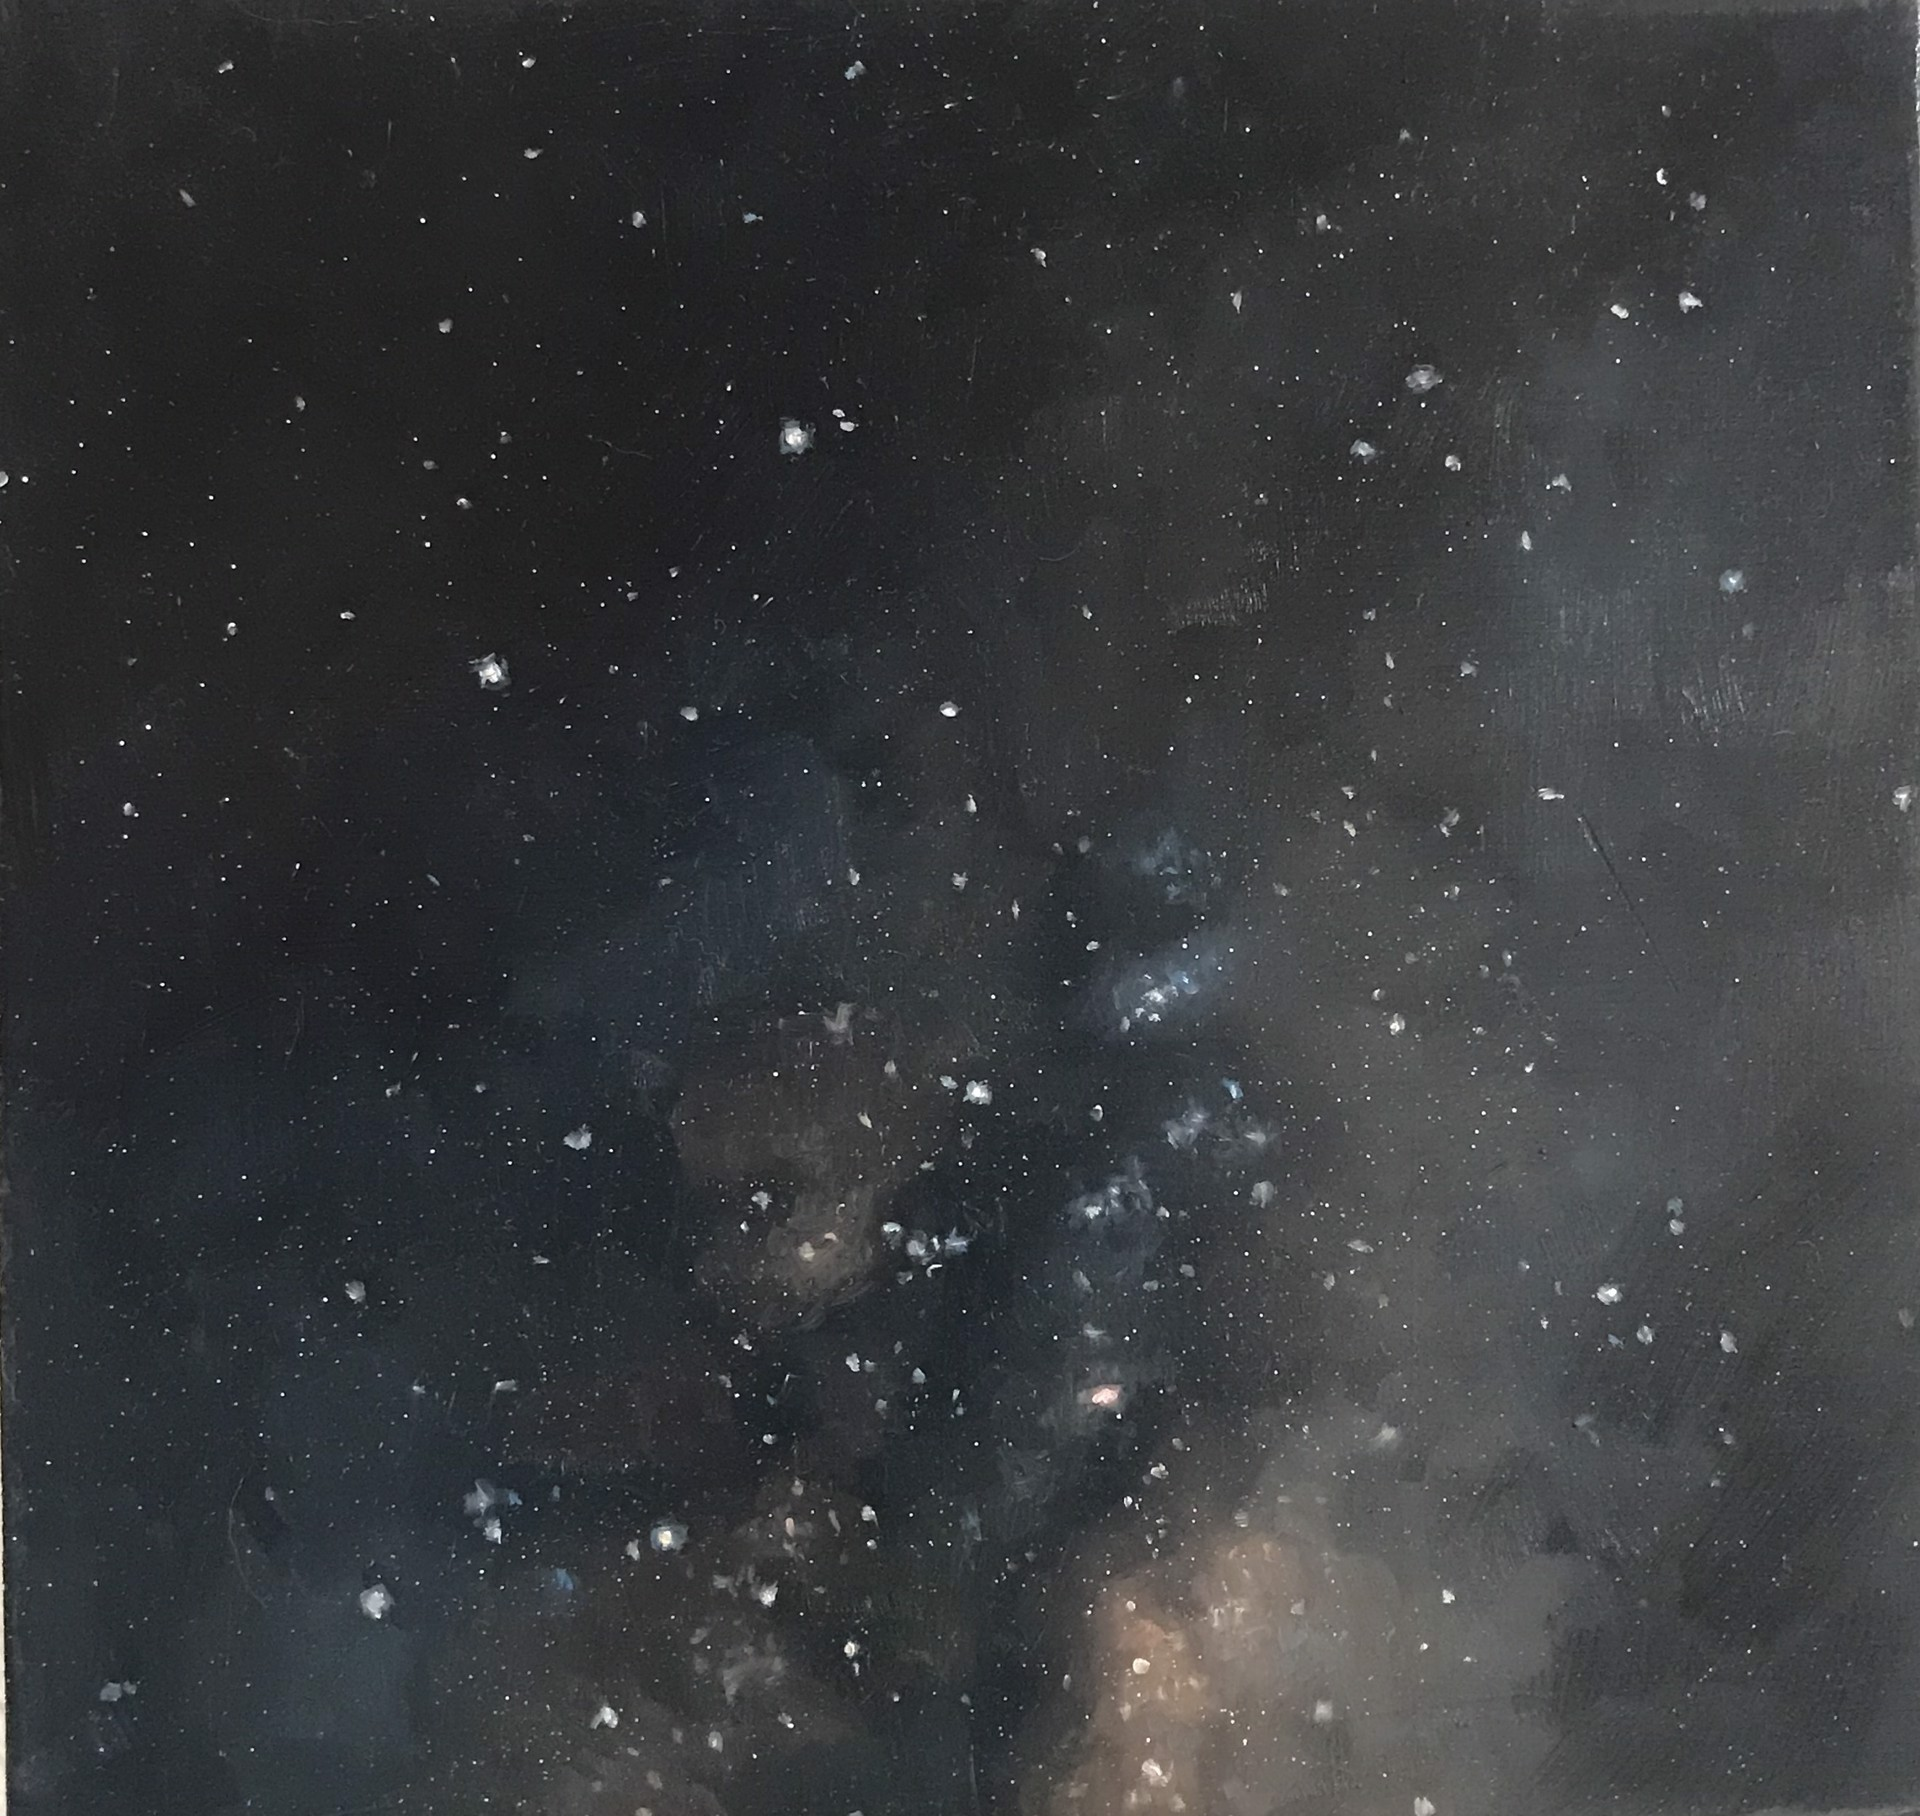 Study (Milky Way) by Robin Cole